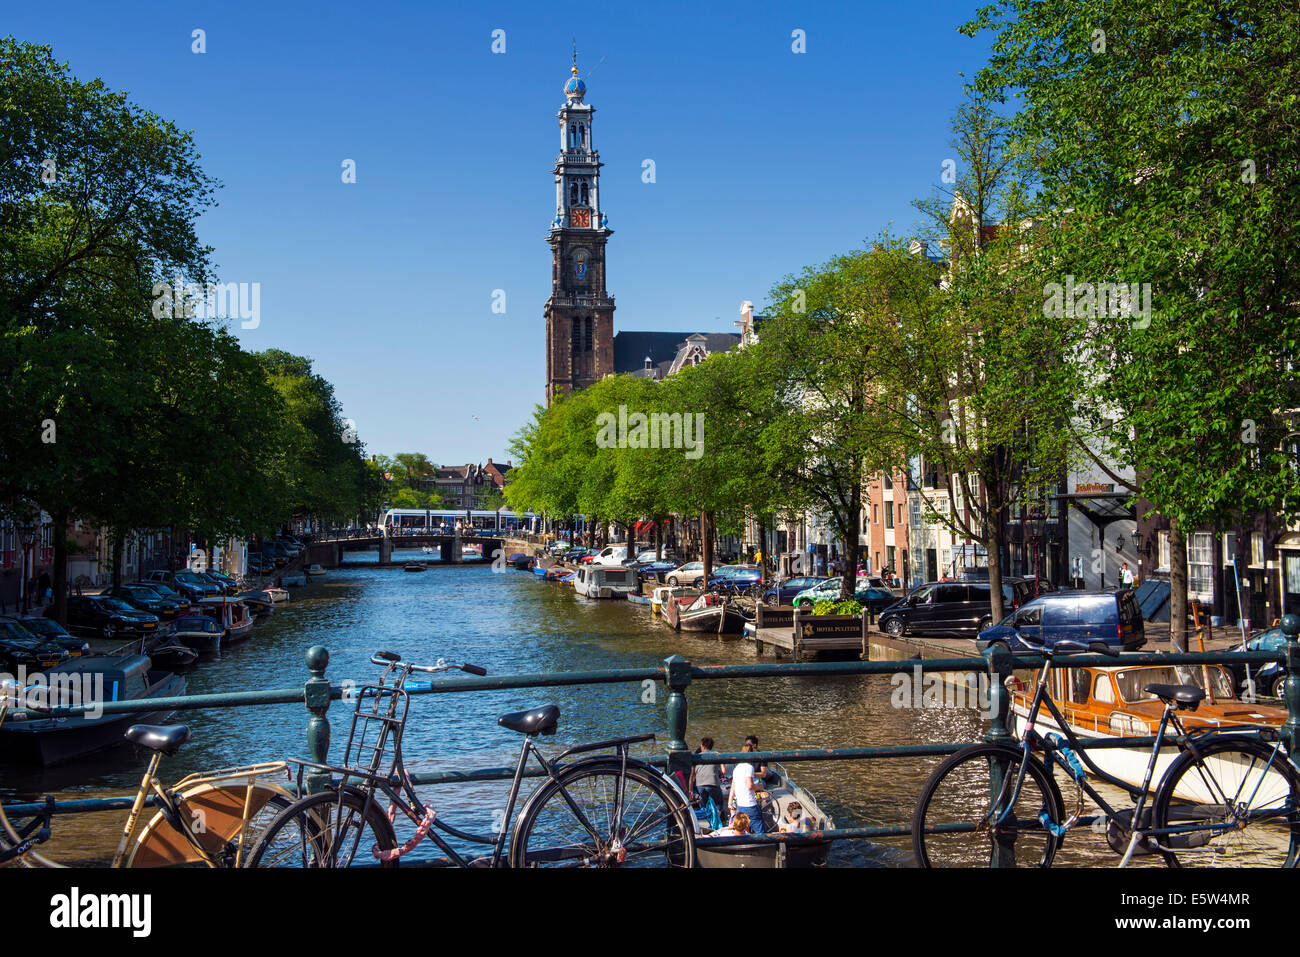 Westerkerk on Prinsengracht Canal, Amsterdam, Holland Stock Photo